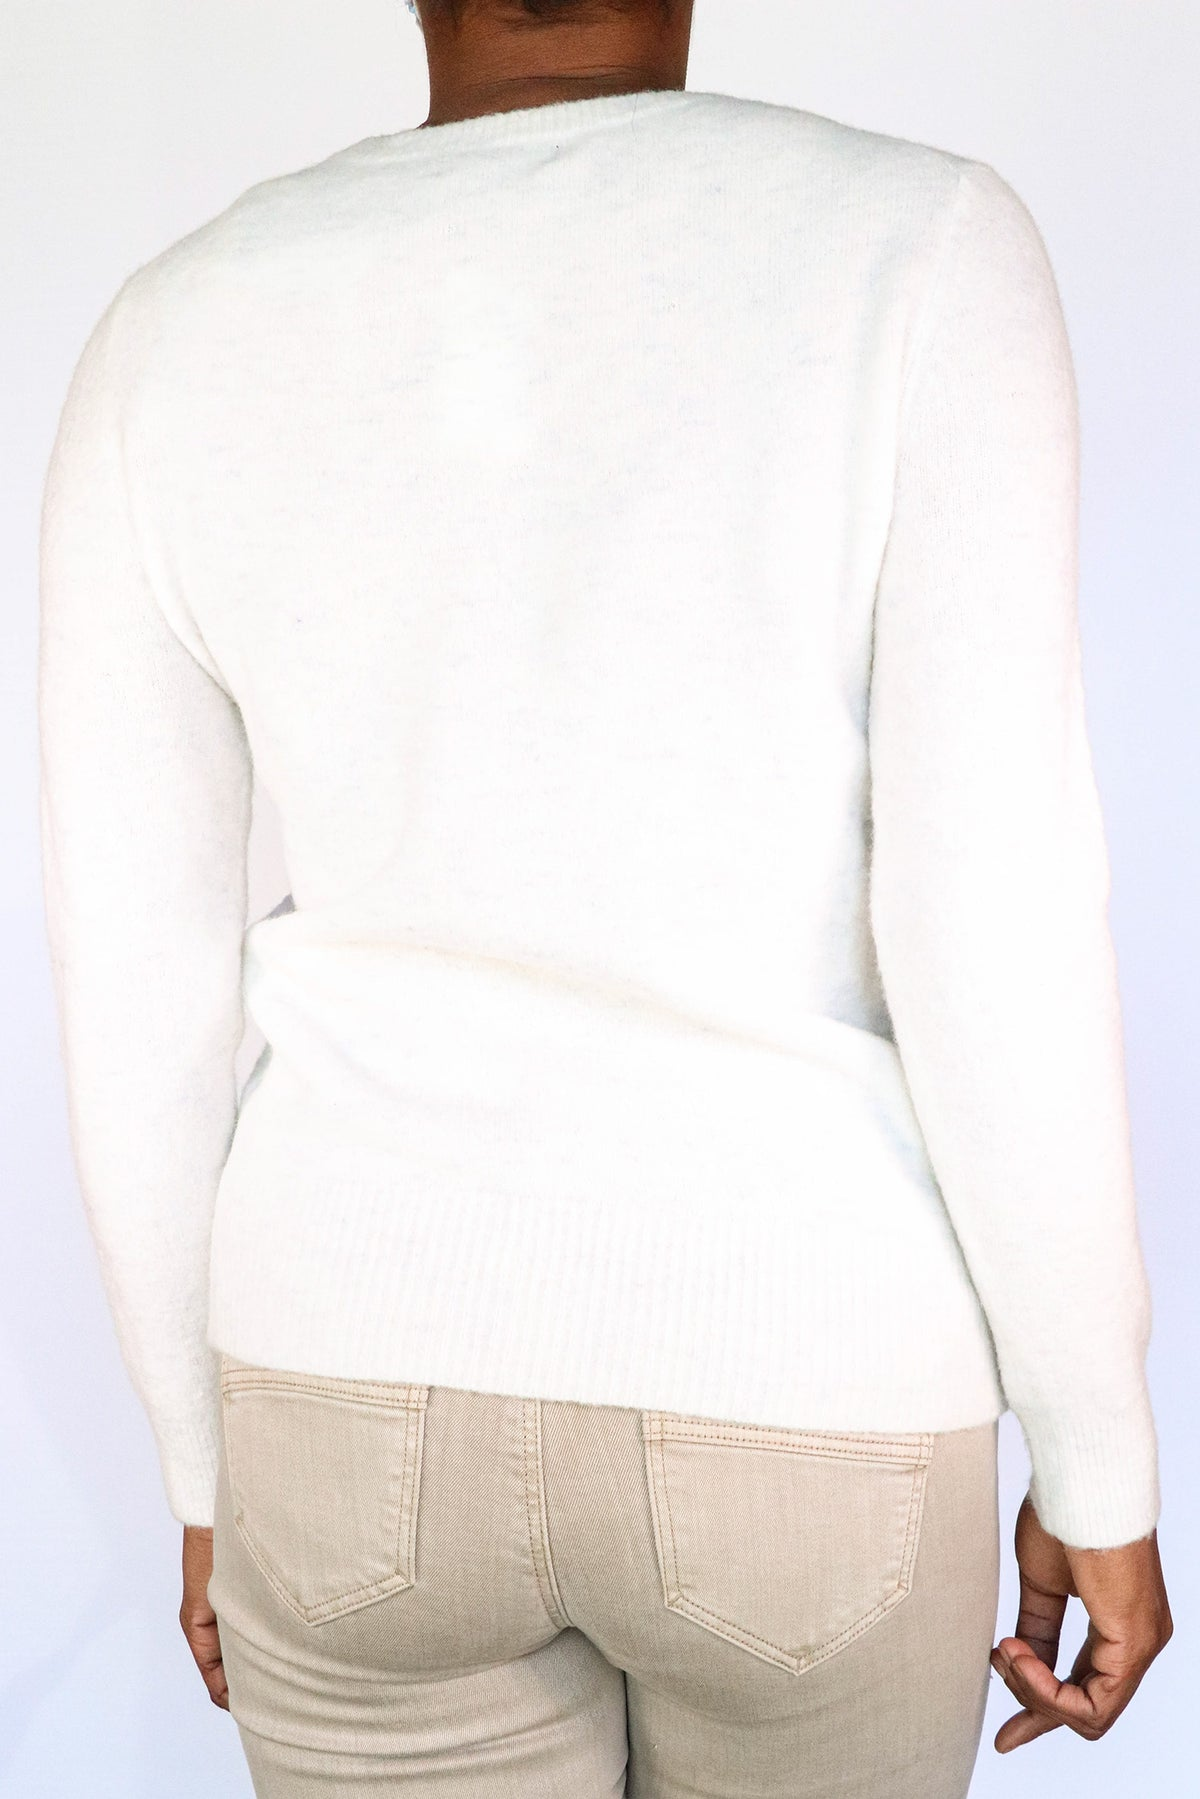 Banana Republic - Wool Sweater - S